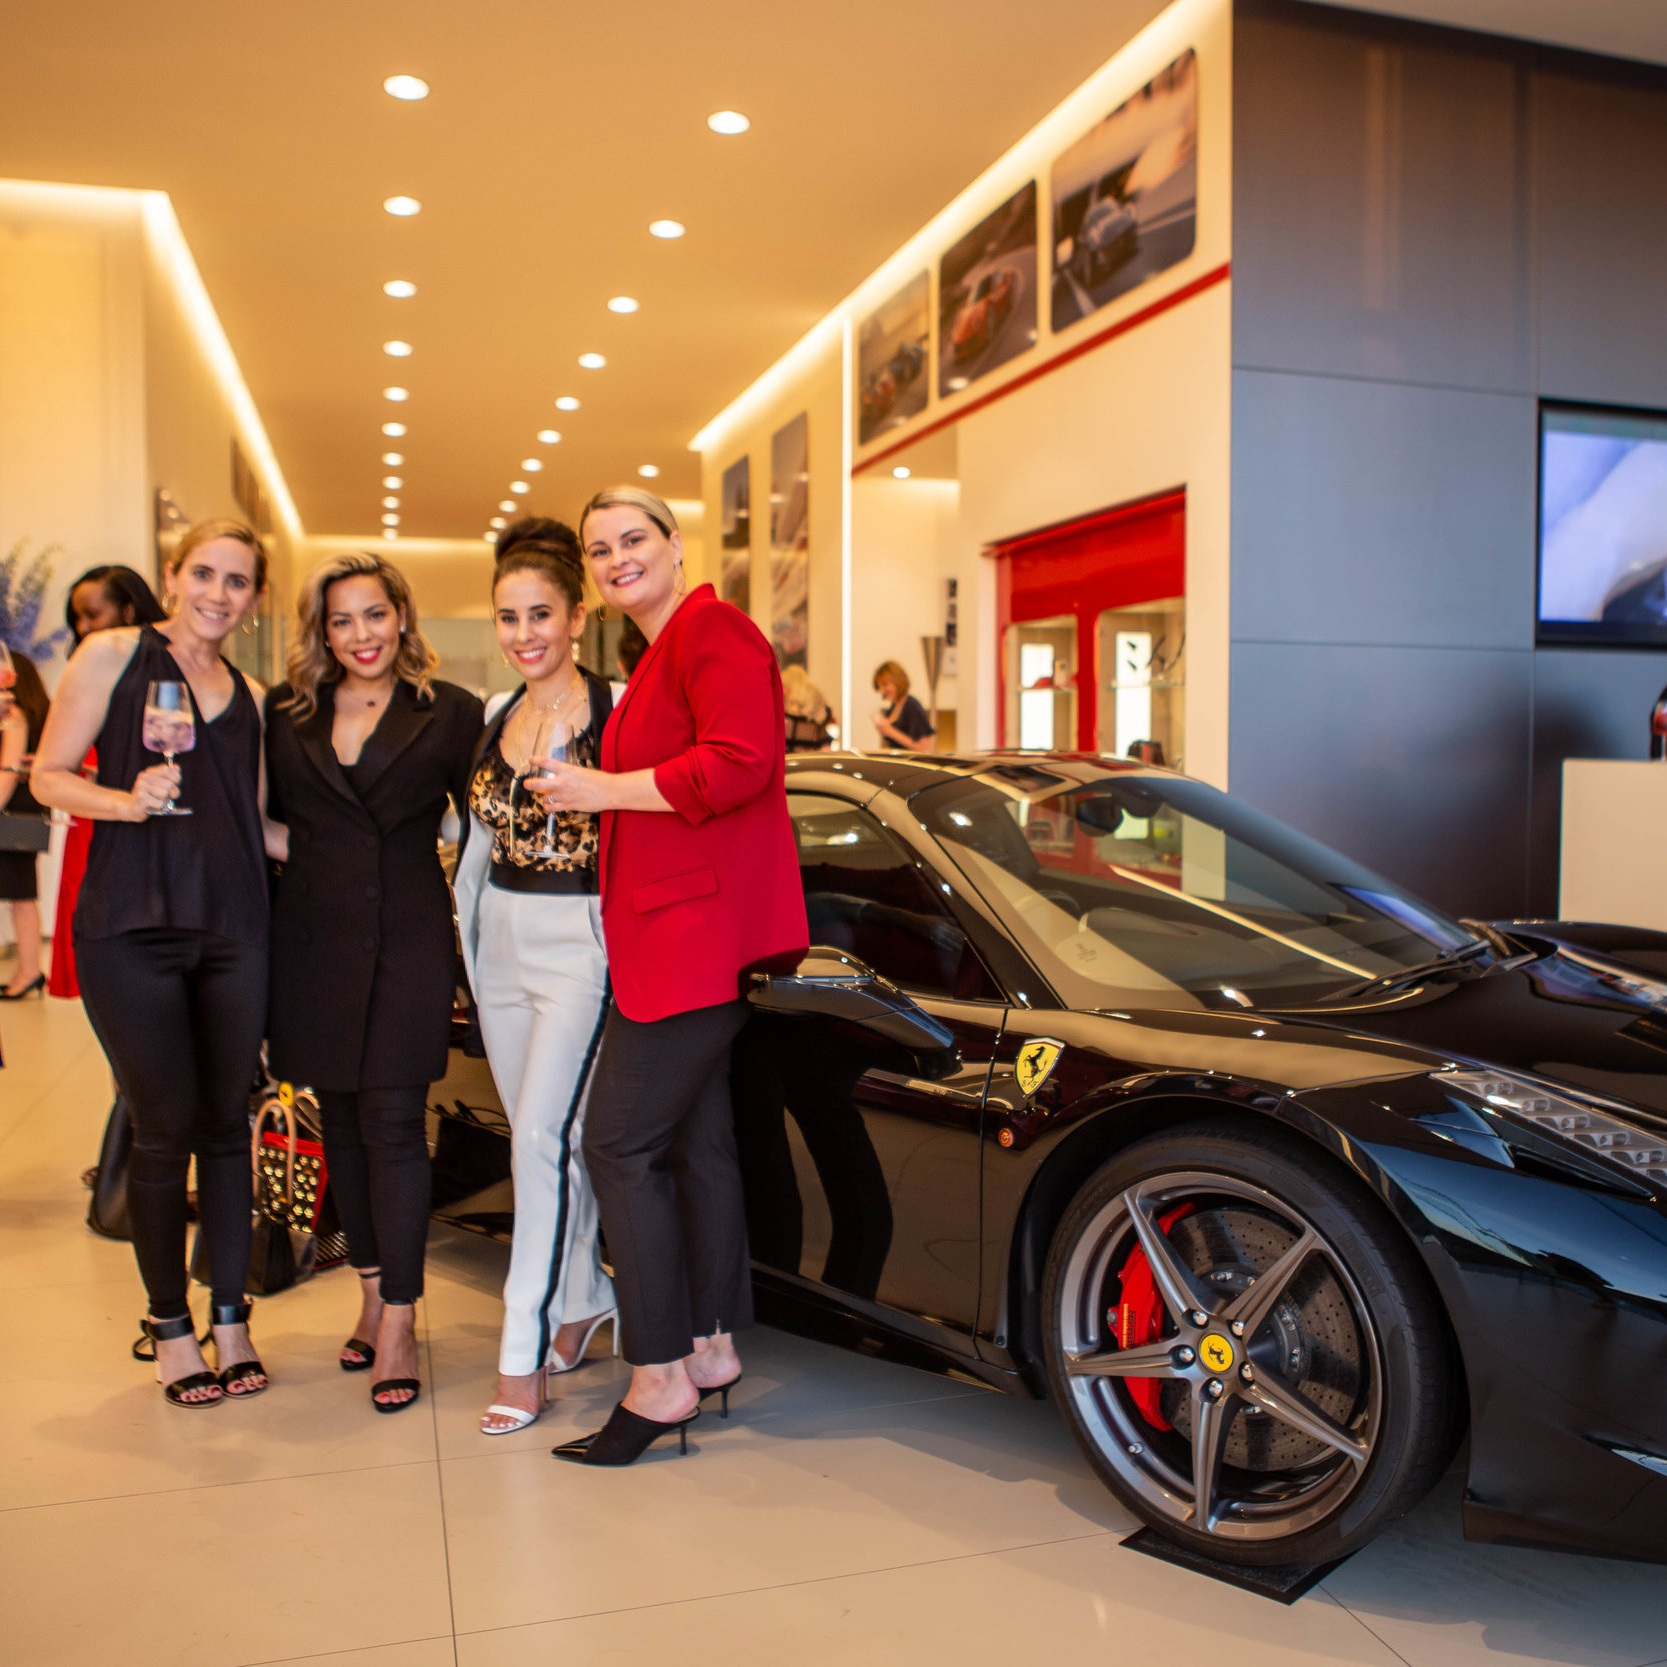 Ferrari Dinner for Driven Women - What: The Ferrari Dinner for Driven Women brought together 24 inspirational, self-made women who continue to inspire and empower others for an evening of beautiful food, genuine connection and sleek cars.Who: 24 Driven, Inspirational Women Where: Ferrari Barbagallo Showroom, PerthWhat went down: A decadent four-course dining experience to celebrate some of Perth's ultimate female leaders, in true Ferrari style.VIEW GALLERY